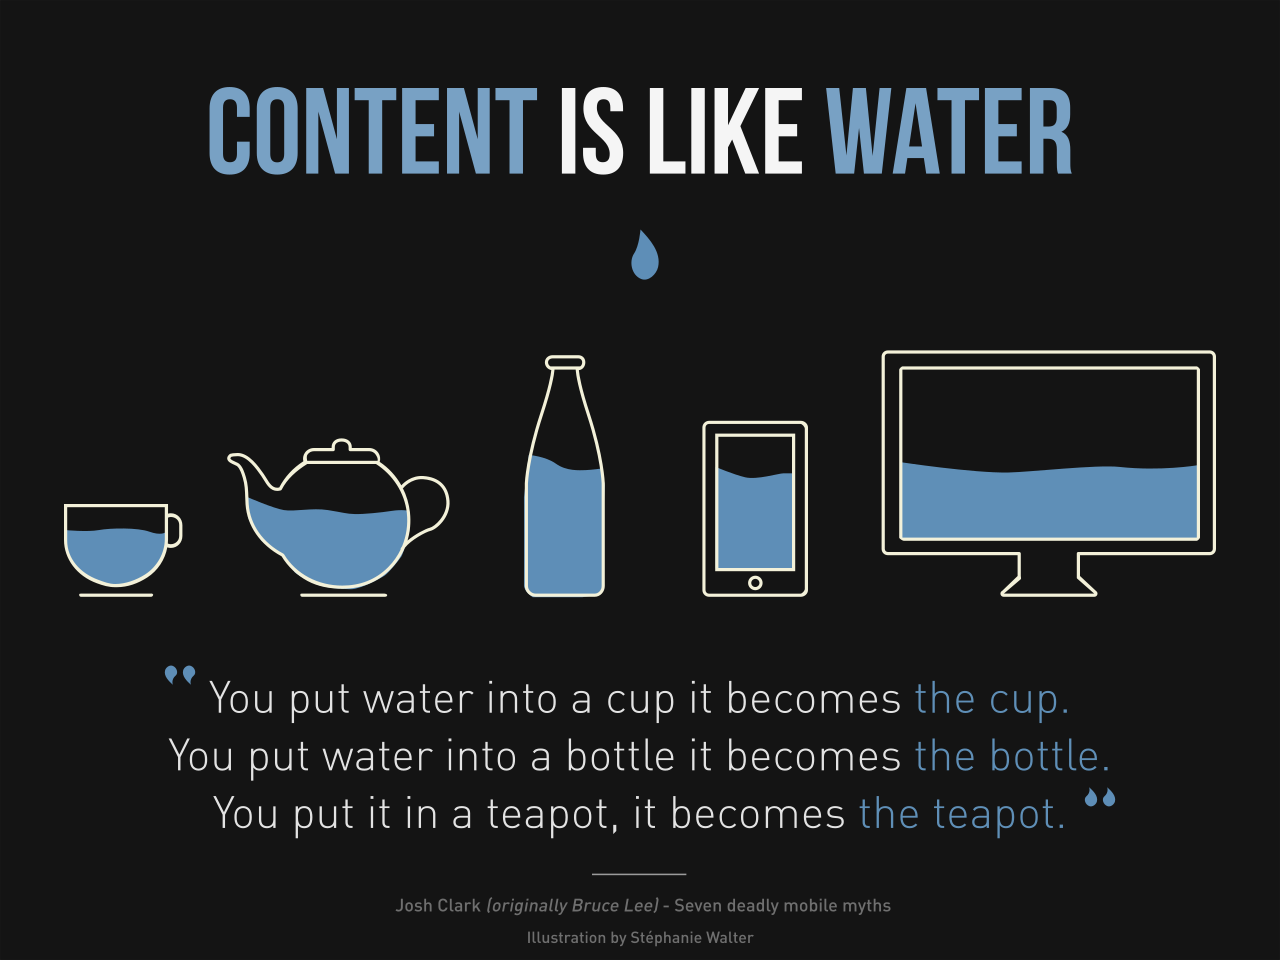 Content is like water - responsive